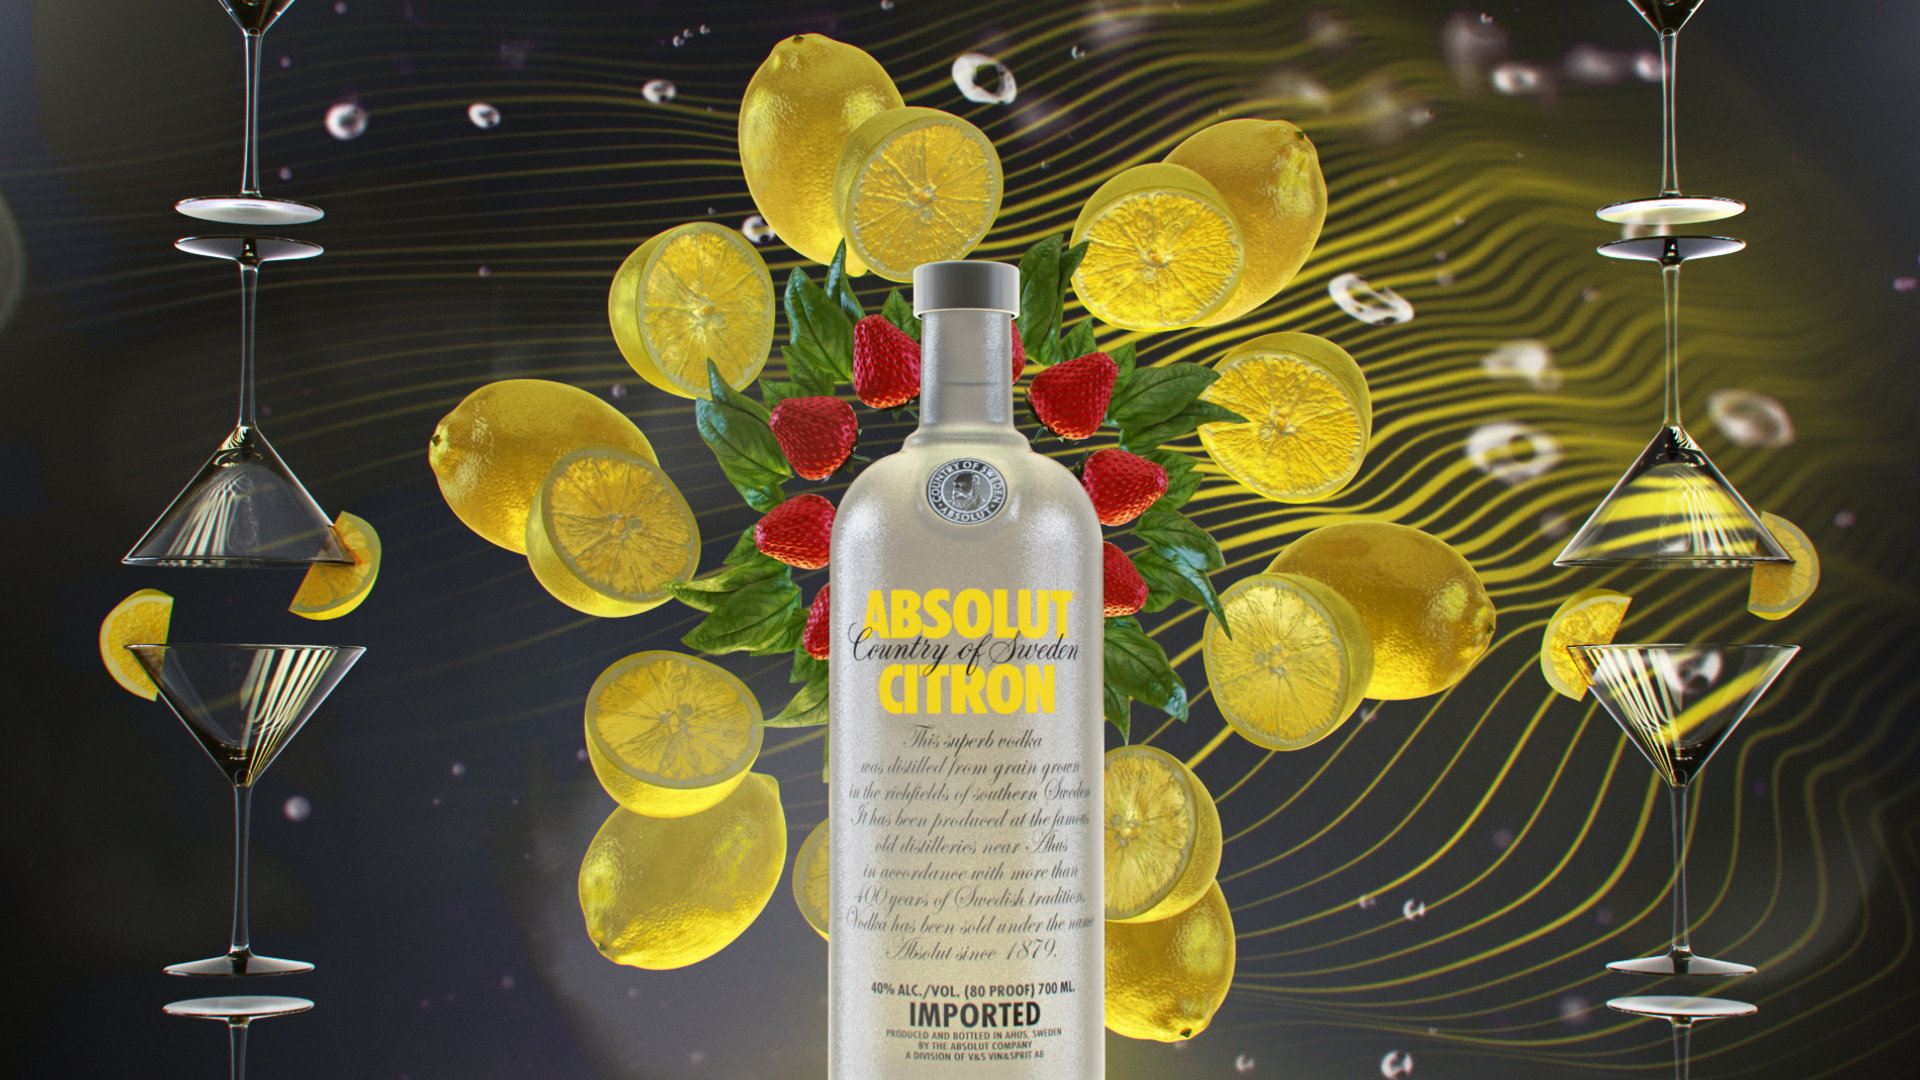 Absolut_Citron_003_dark_a_v2